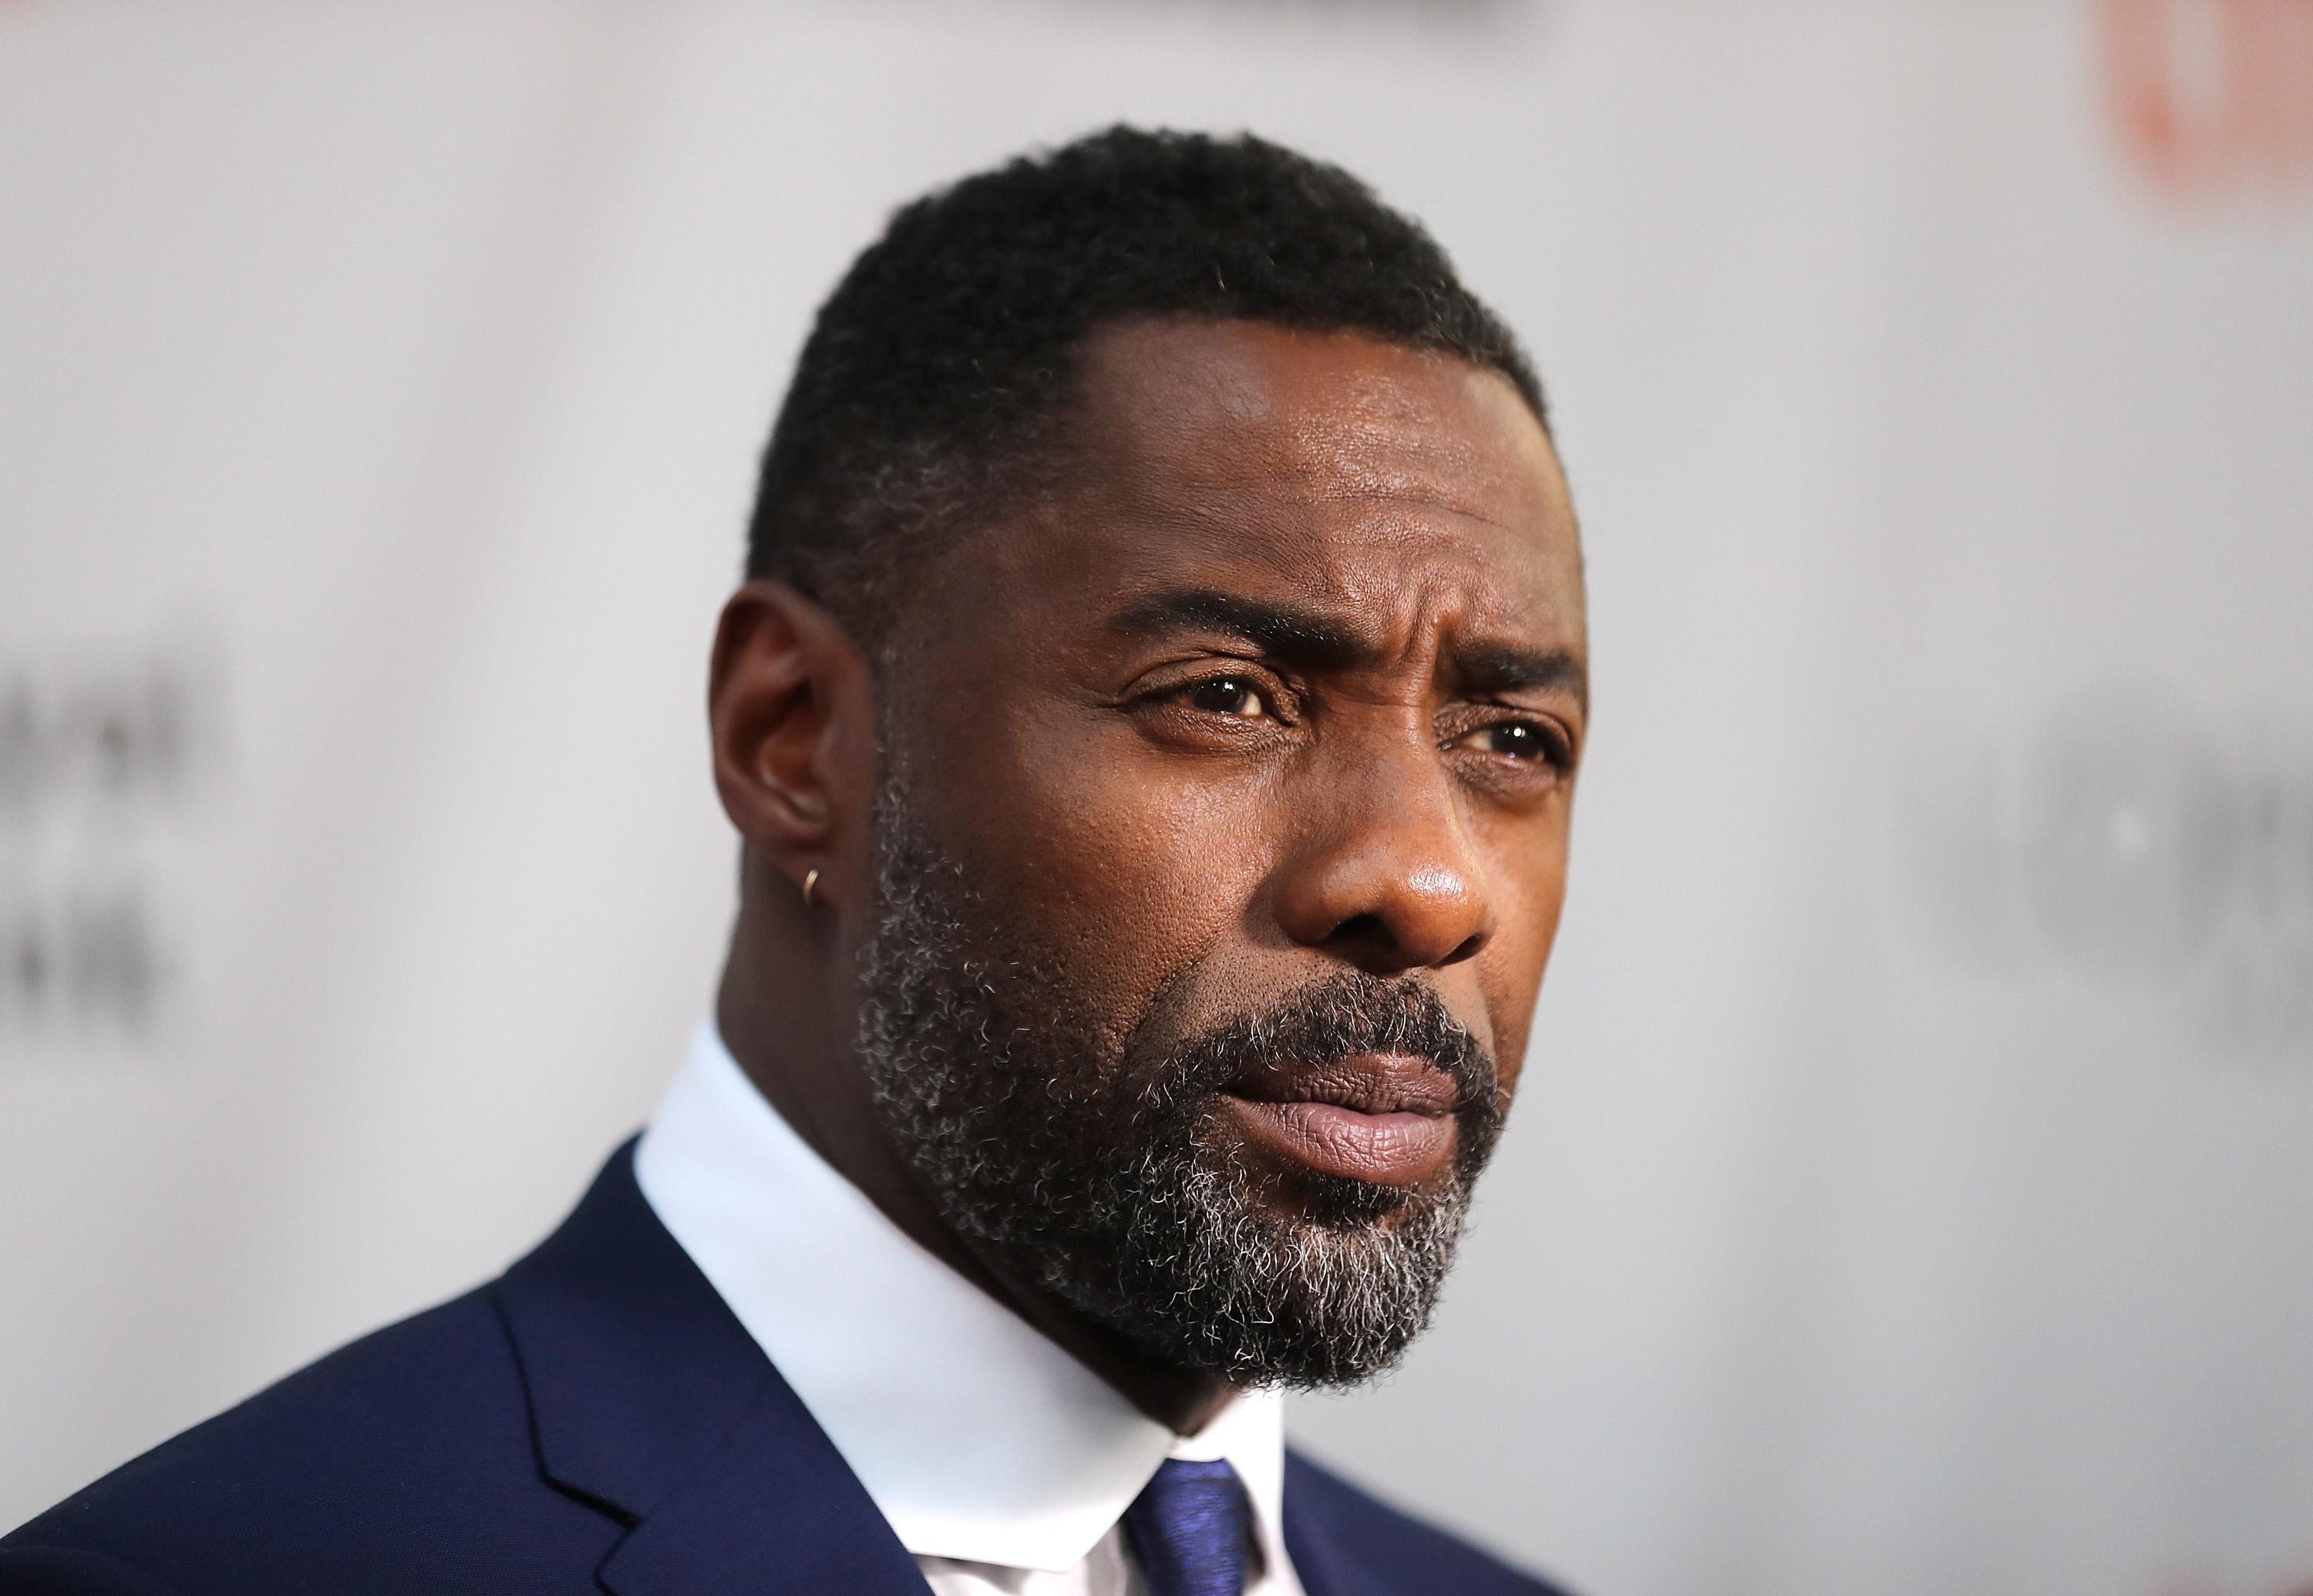 Idris Elba Add Fuel to James Bond Rumors With Cryptic Tweet